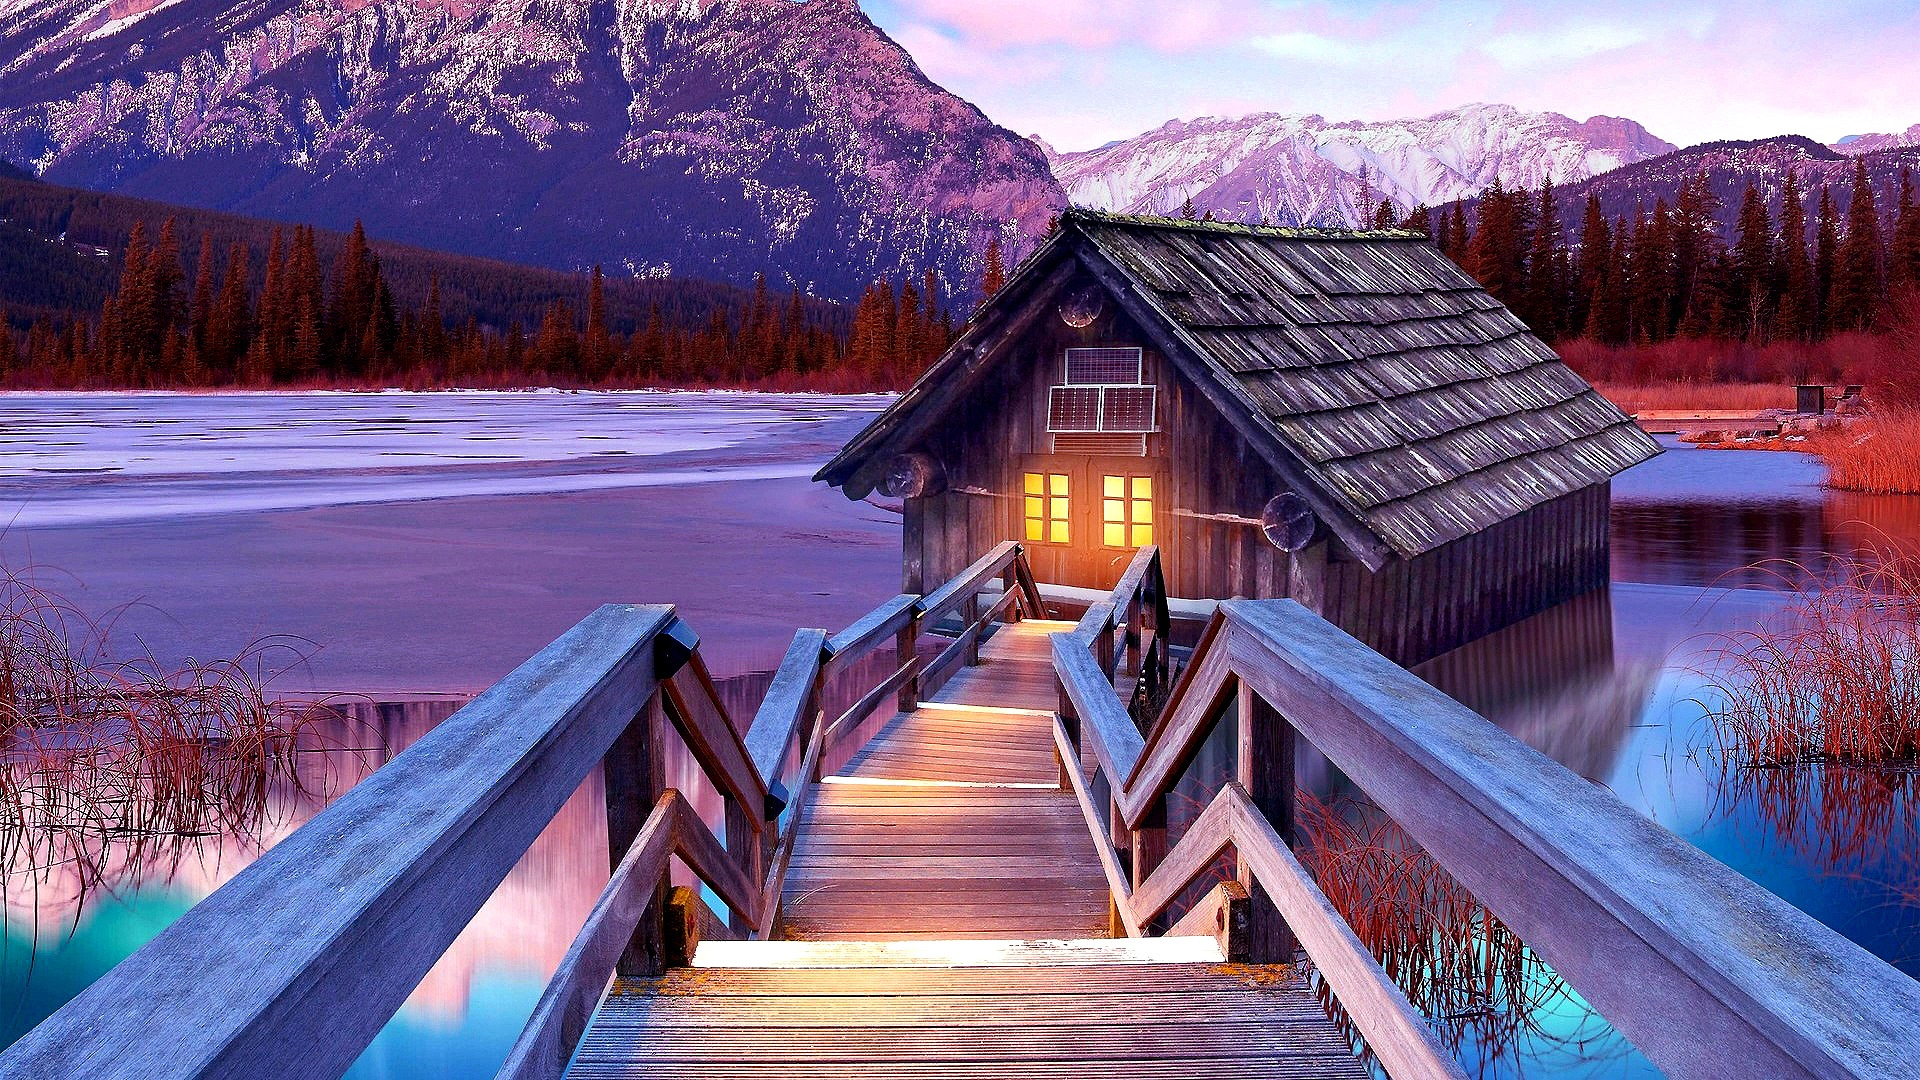 House on the lake wallpaper